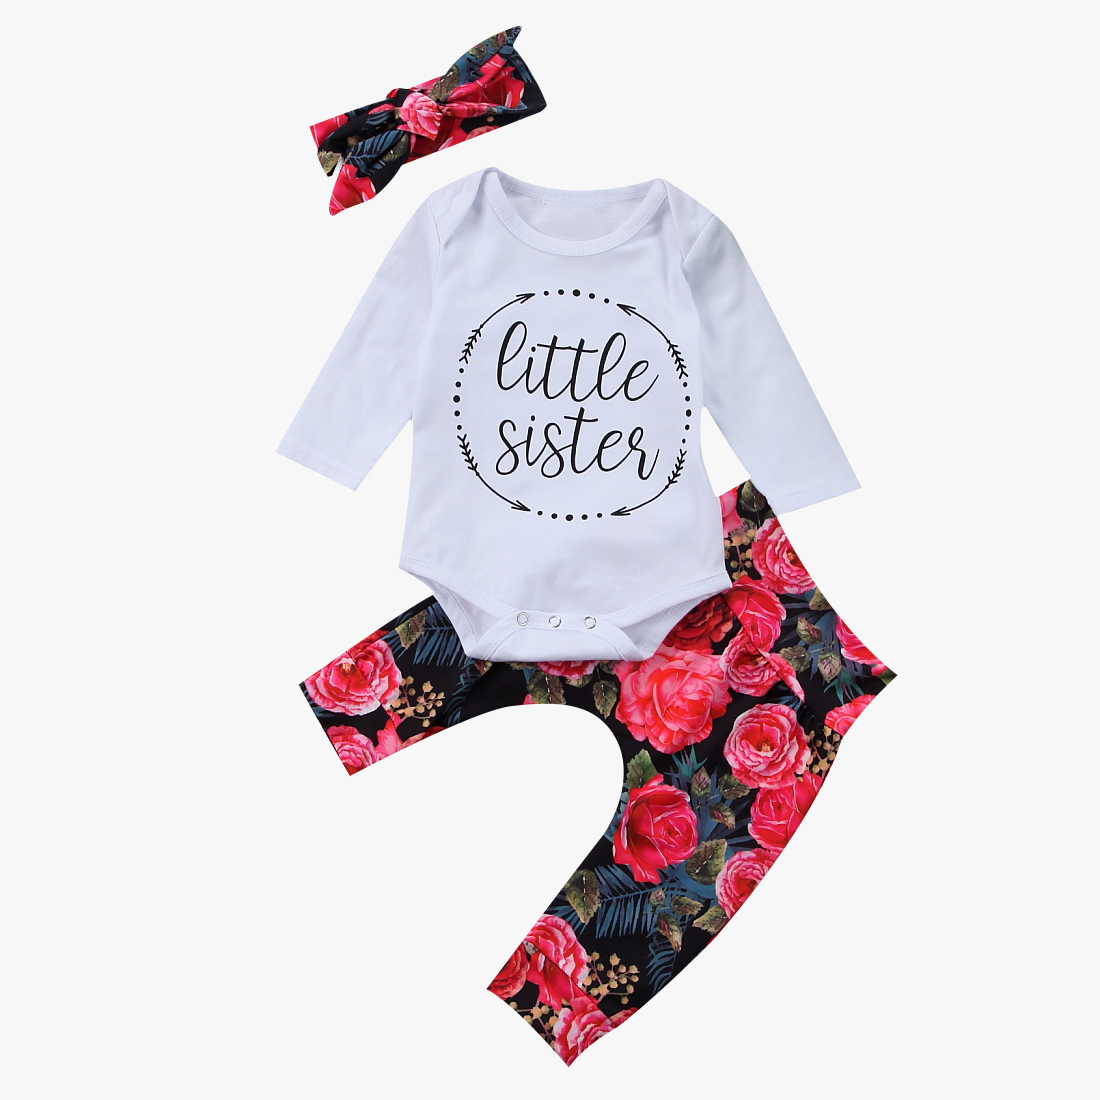 3Pcs New Style Newborn Baby Girls Clothes Long Sleeve Tops Romper Flower Pants Outfits Baby Clothing Set 0 to 18M